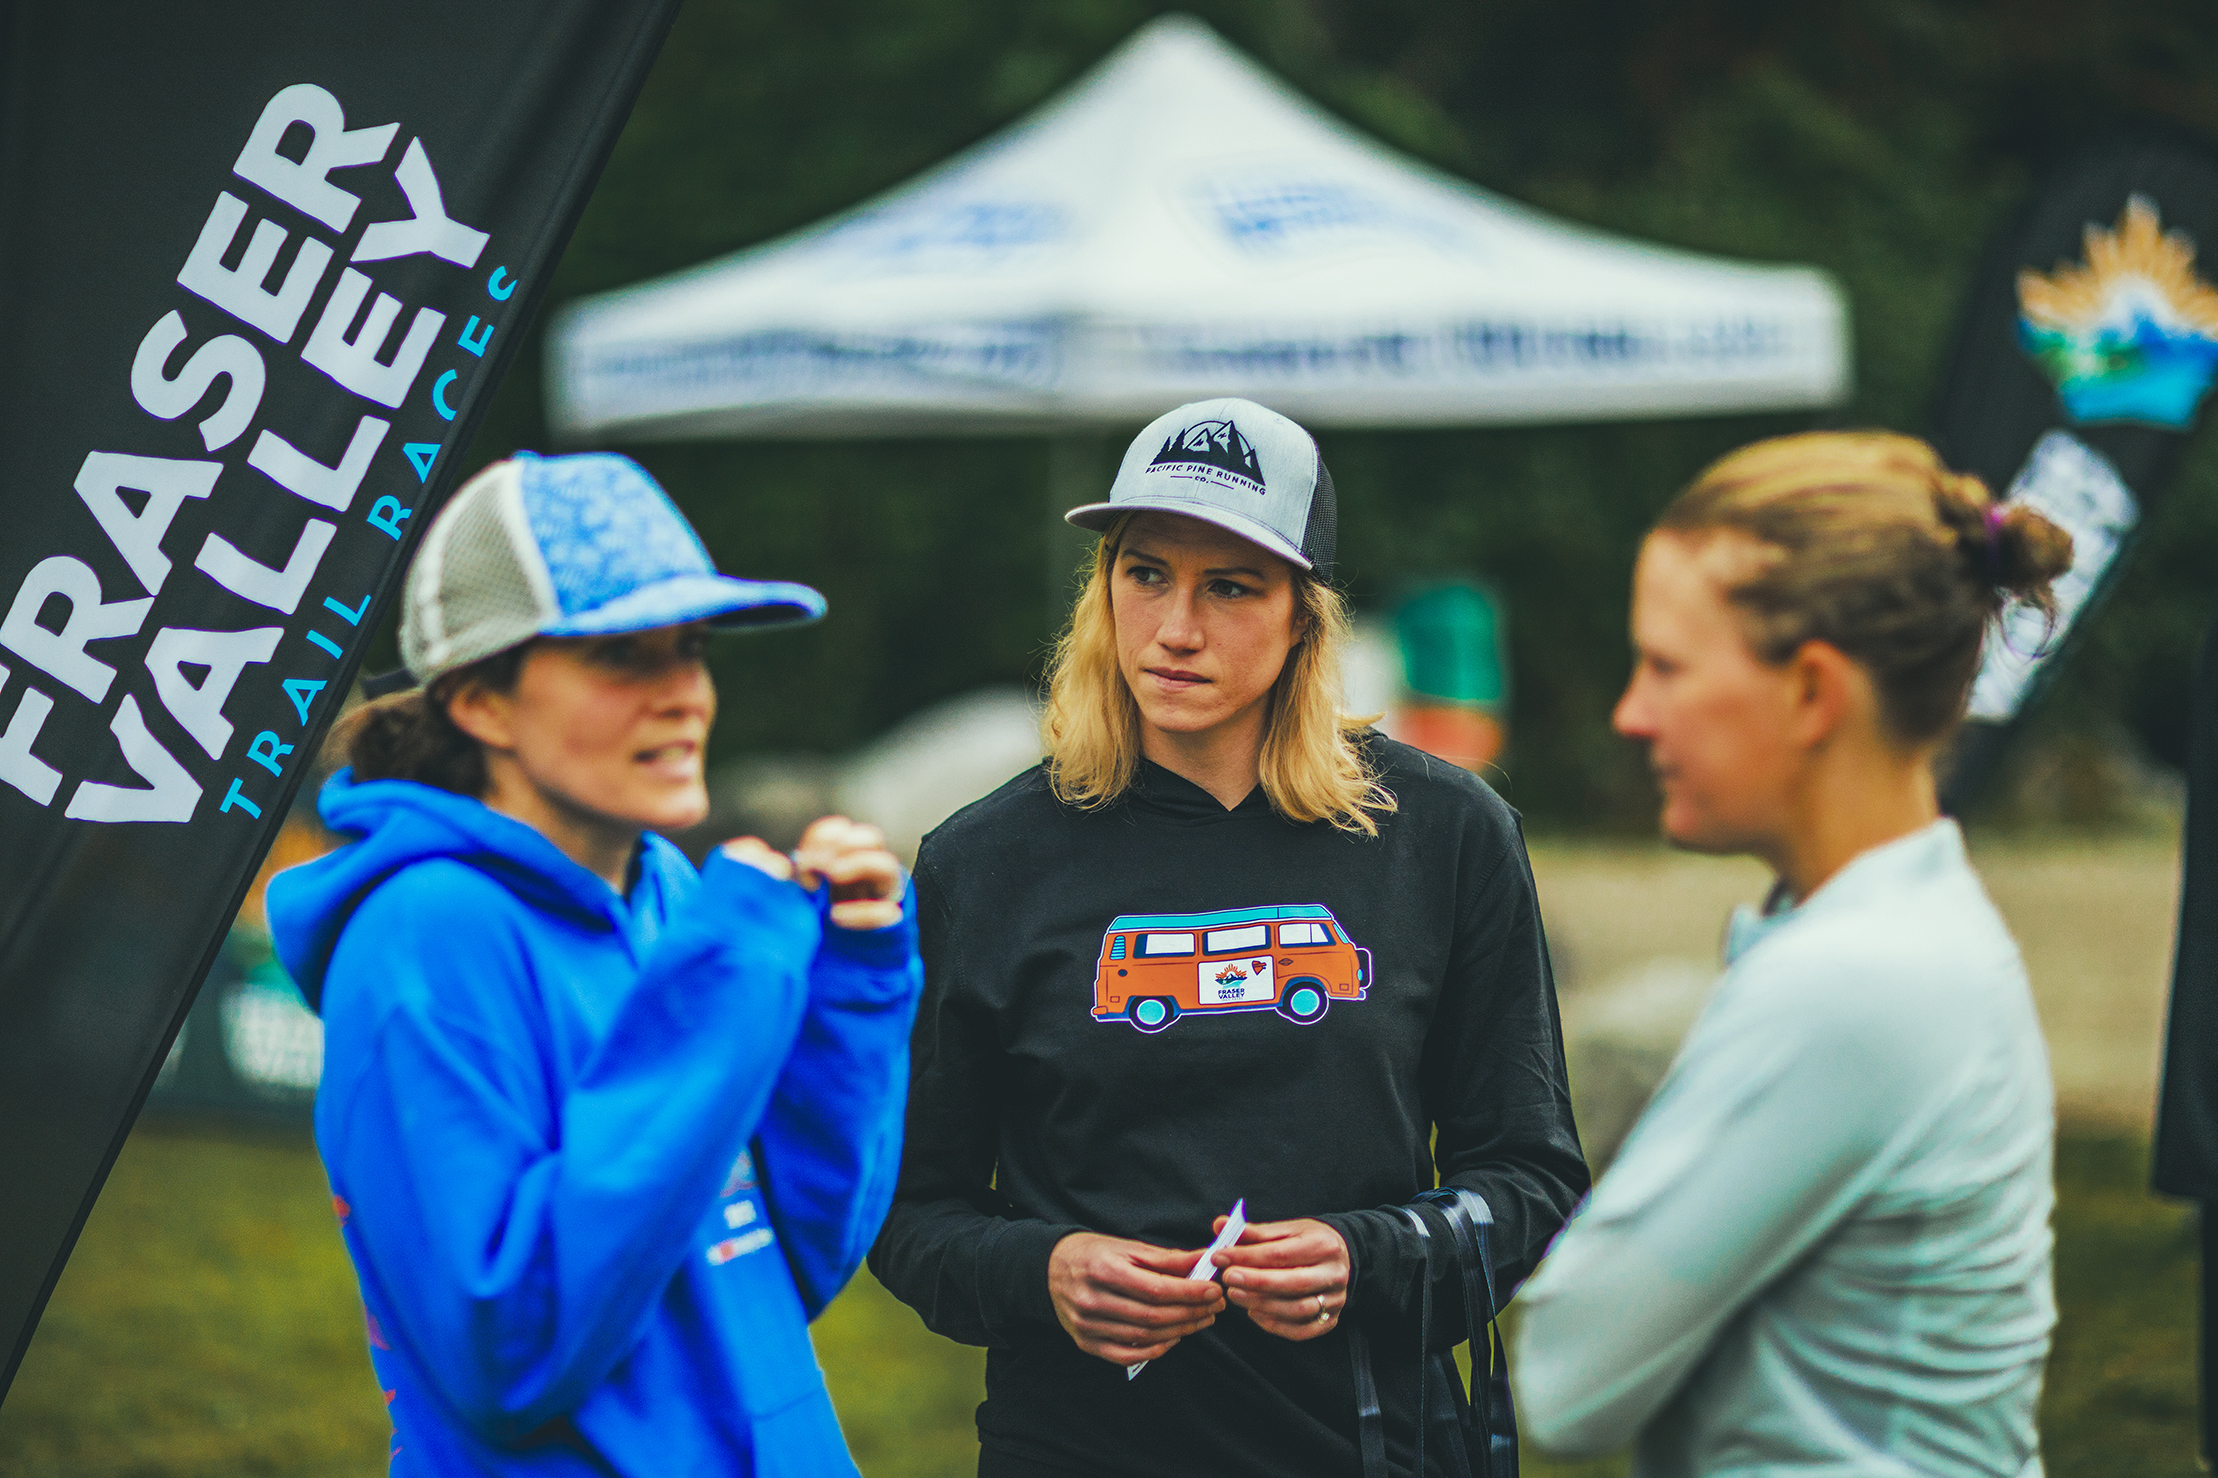 Fraser Valley Trail Races - Bear Mountain - IMG2_2409 by  Brice Ferre Studio - Vancouver Portrait Adventure and Athlete Photographer.jpg